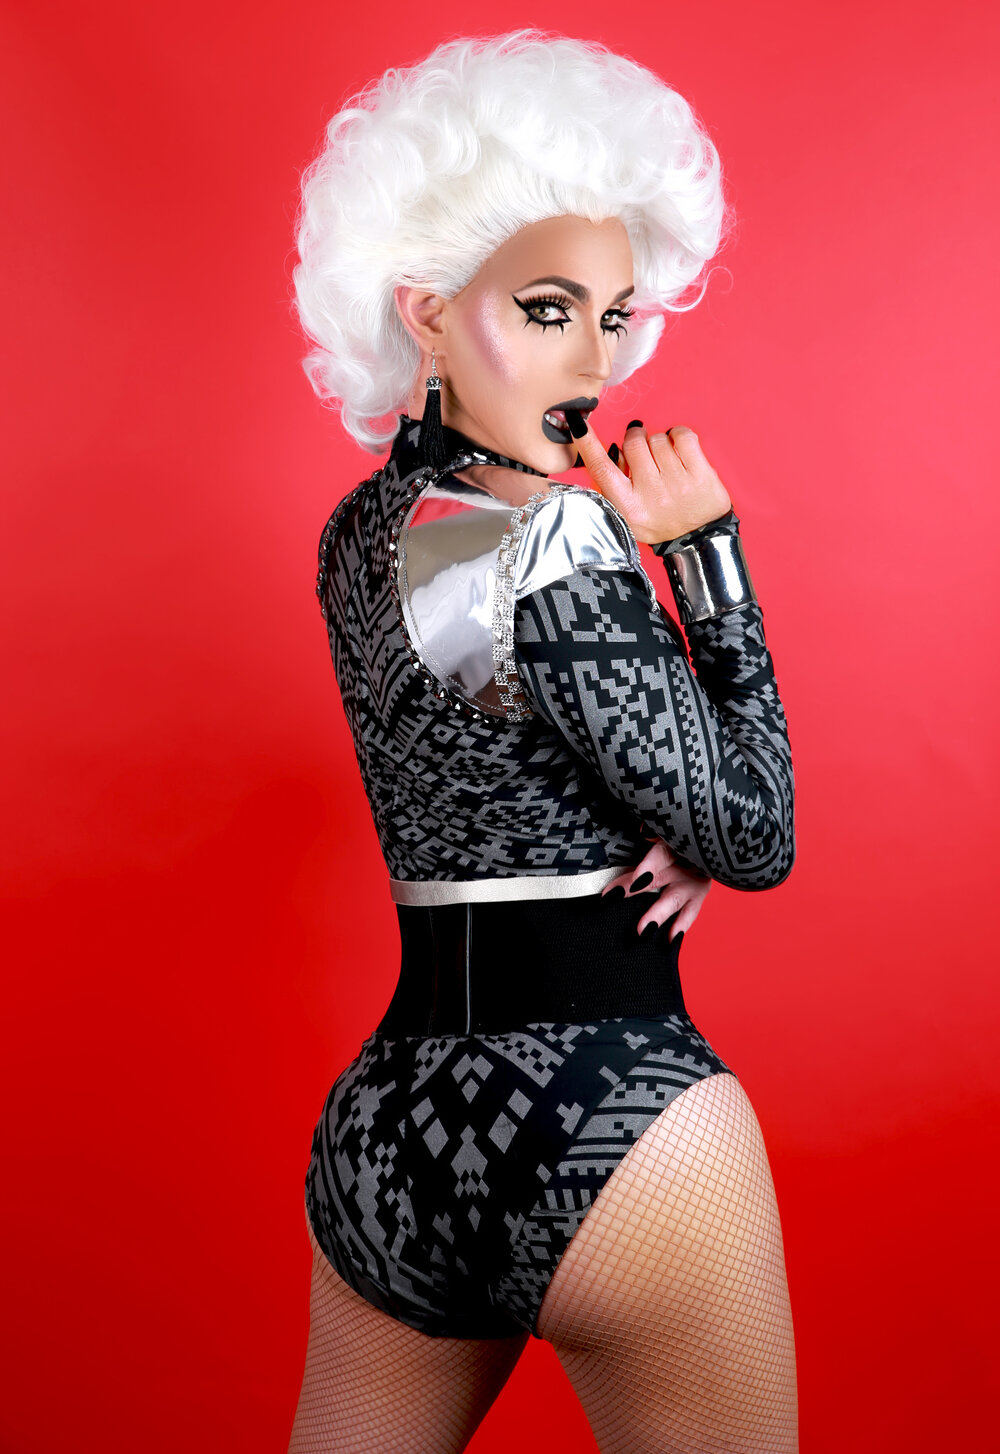 Portrait of Cynthia Lee Fontaine in a black and silver outfit in front of a red background